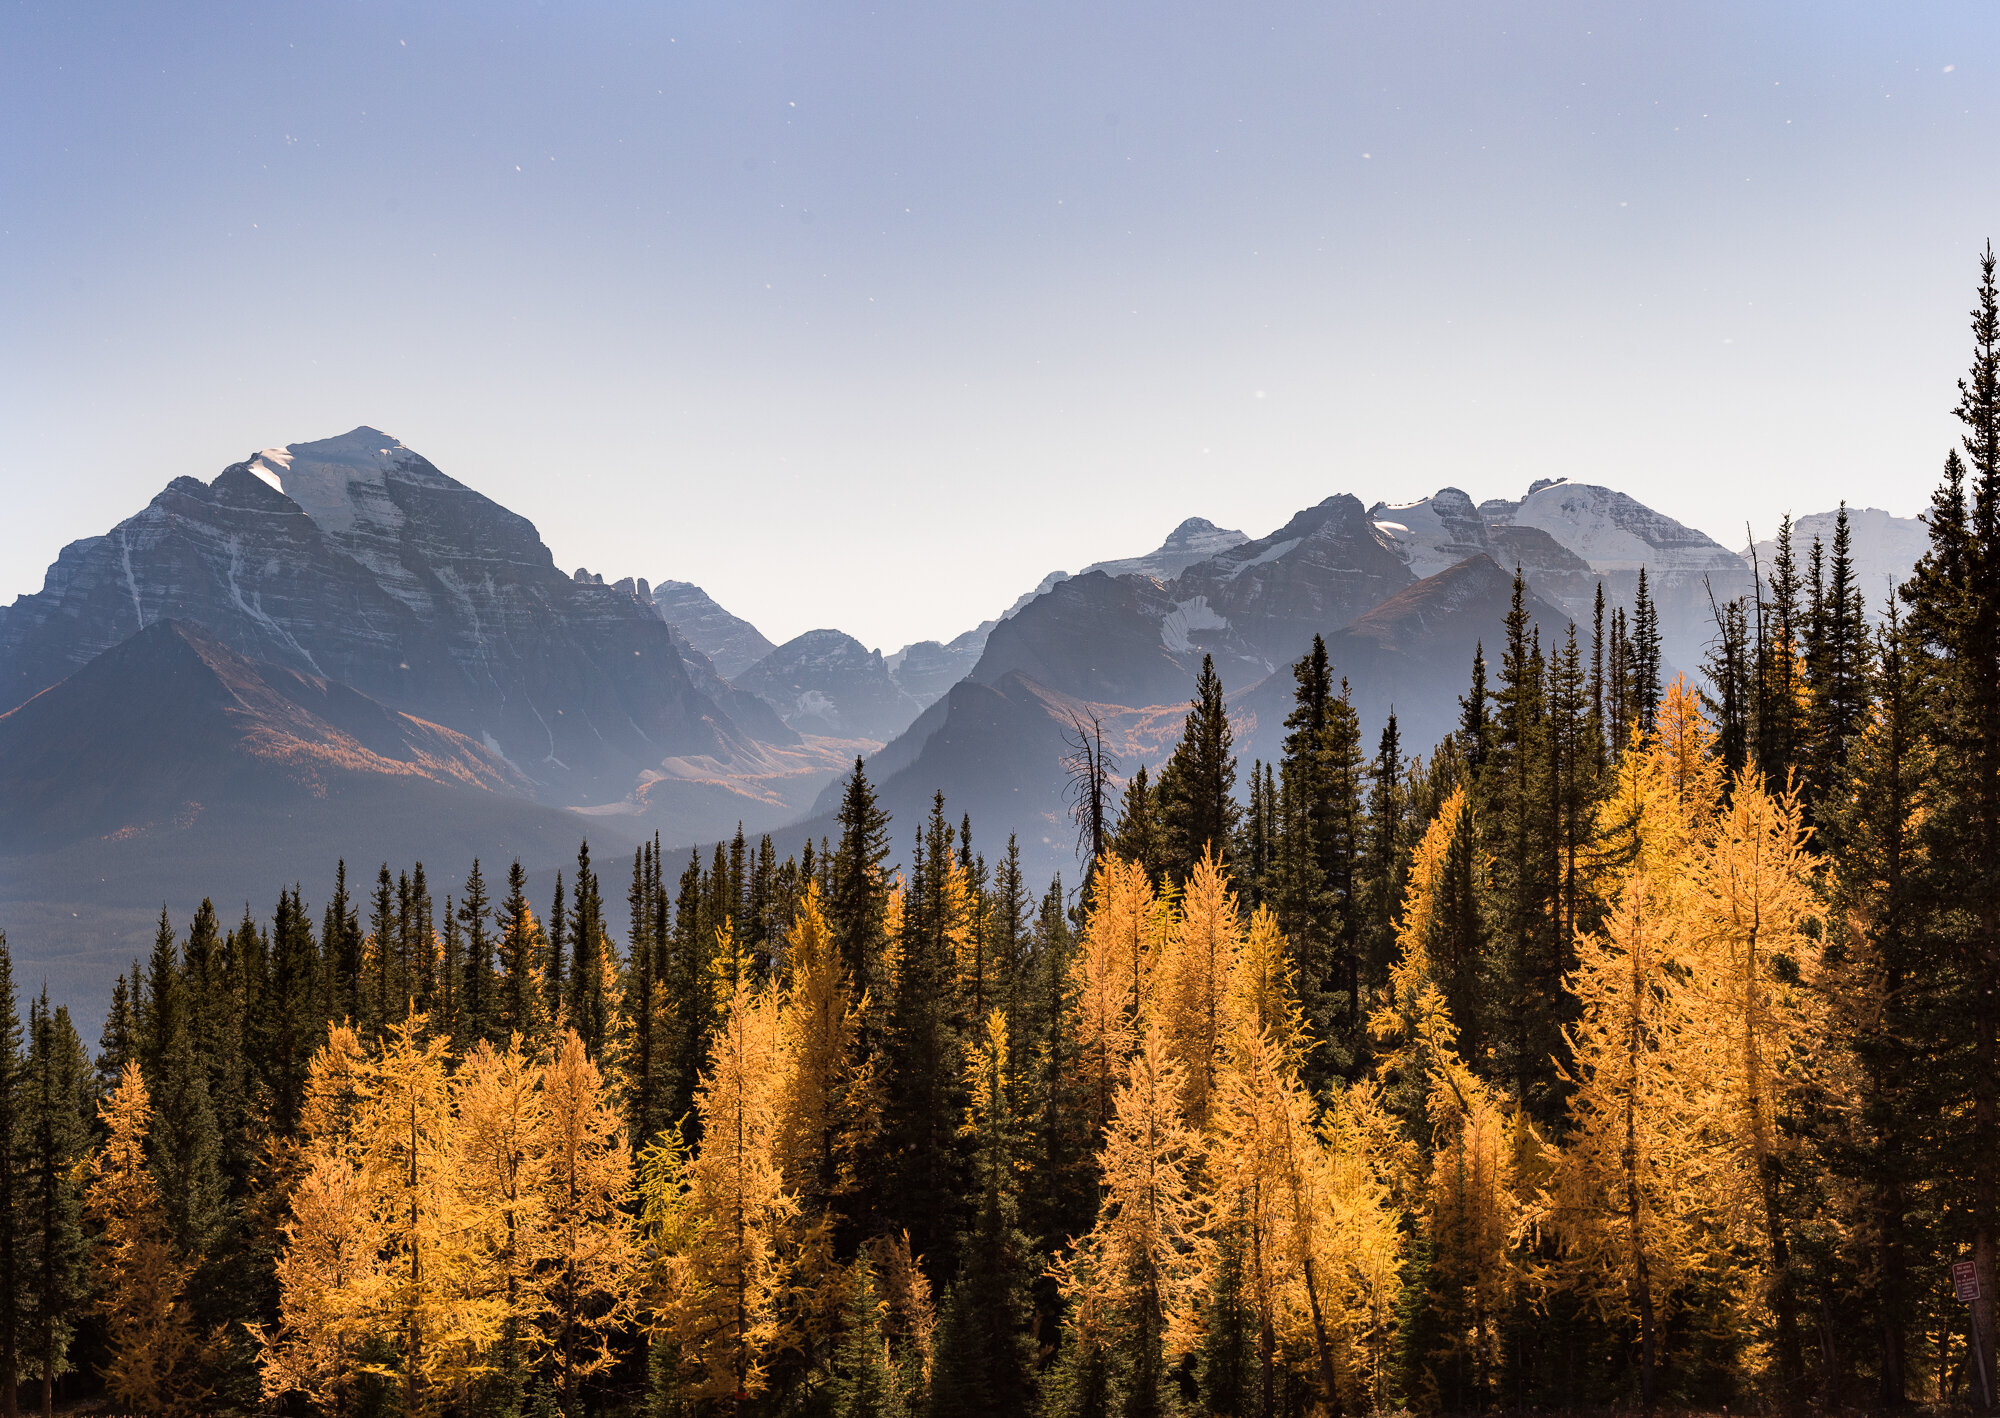 Banff Photography: 'Larch Explosion'